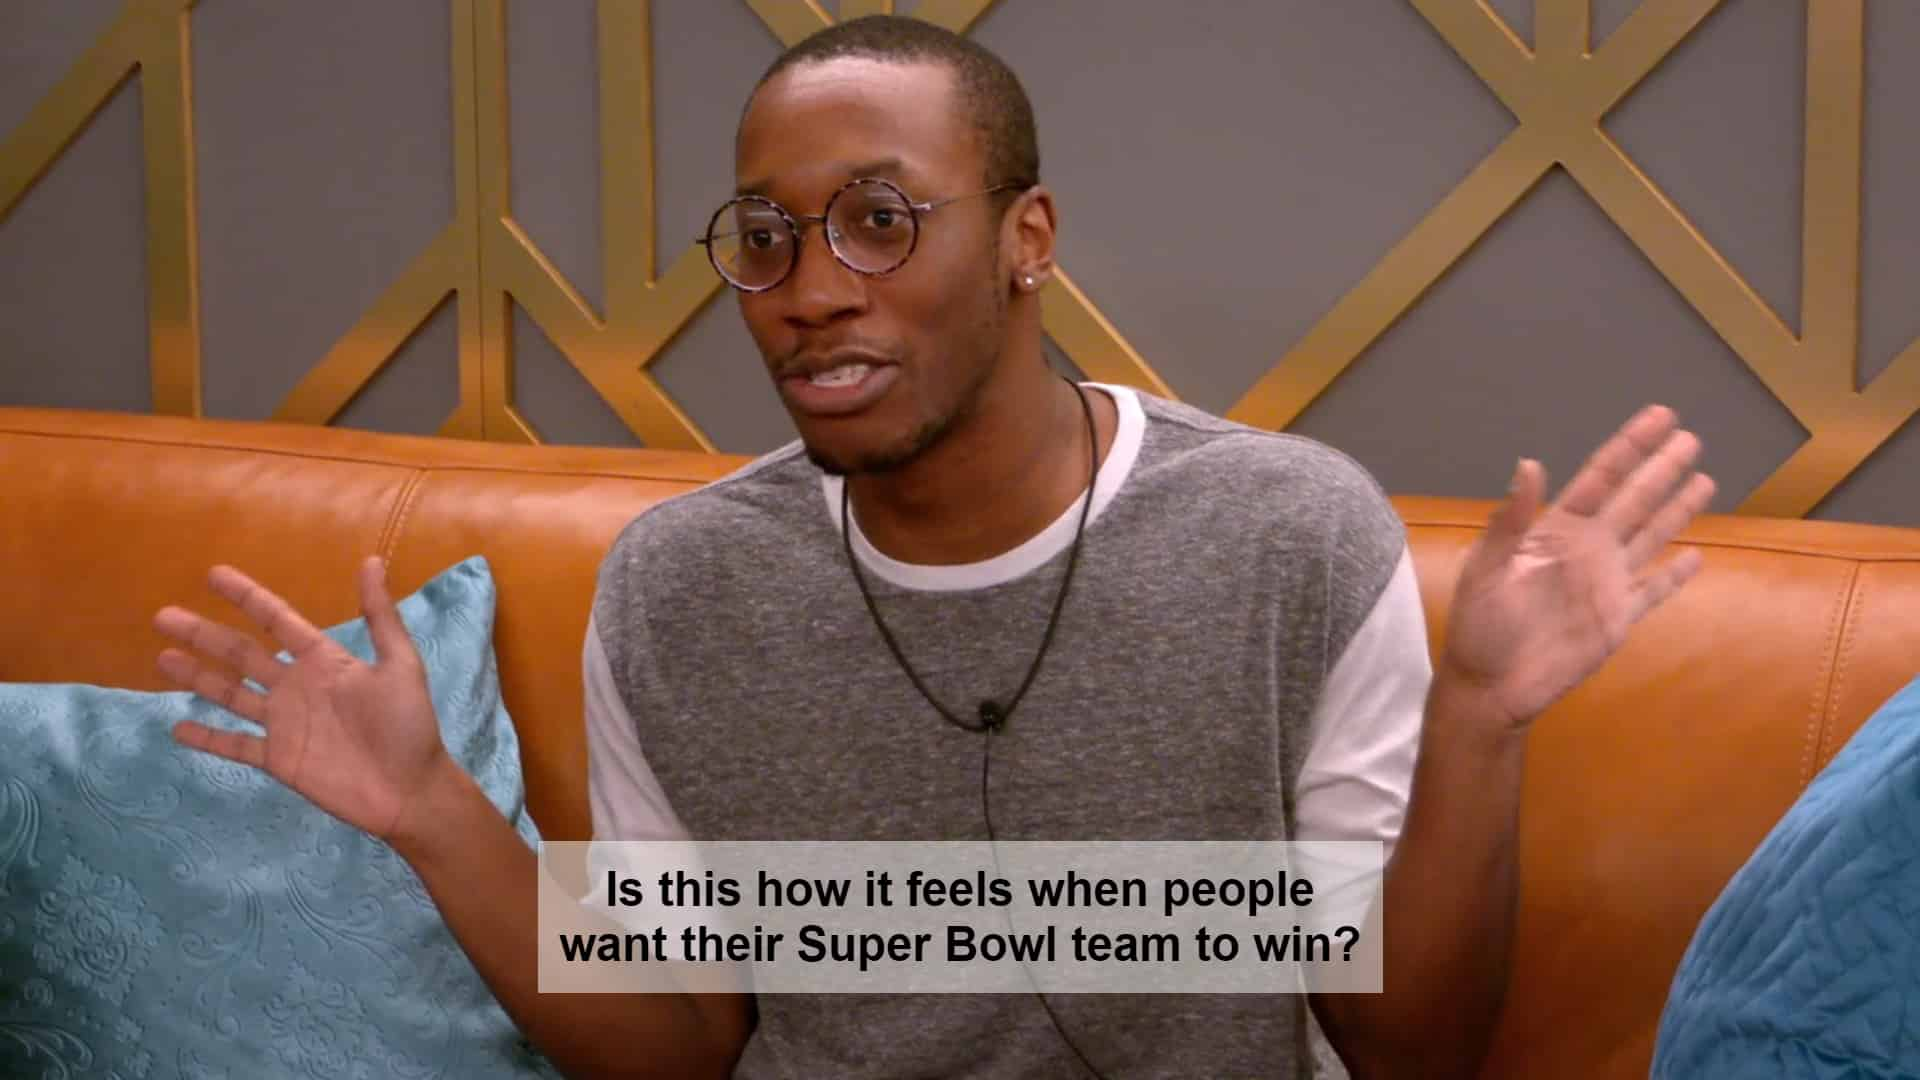 Courtney asking if this is how football fans feel during the Super Bowl?